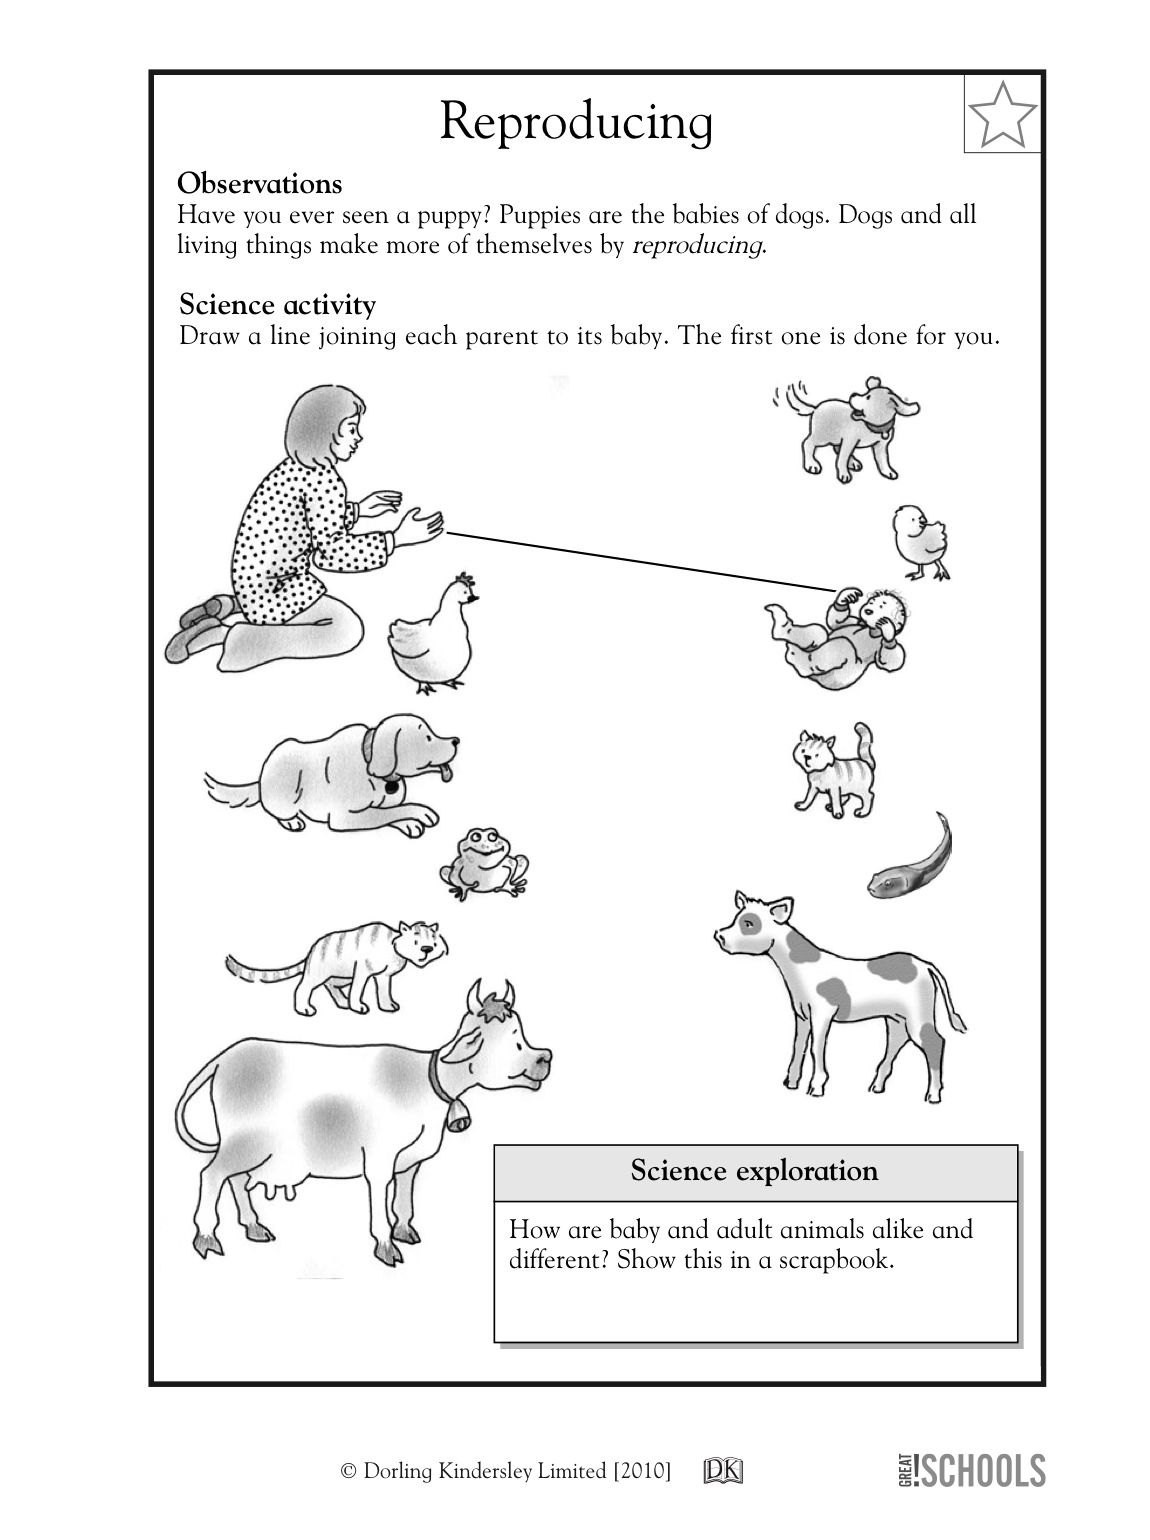 Pin by lilsunflower on Coloring pages | Science worksheets, 1st